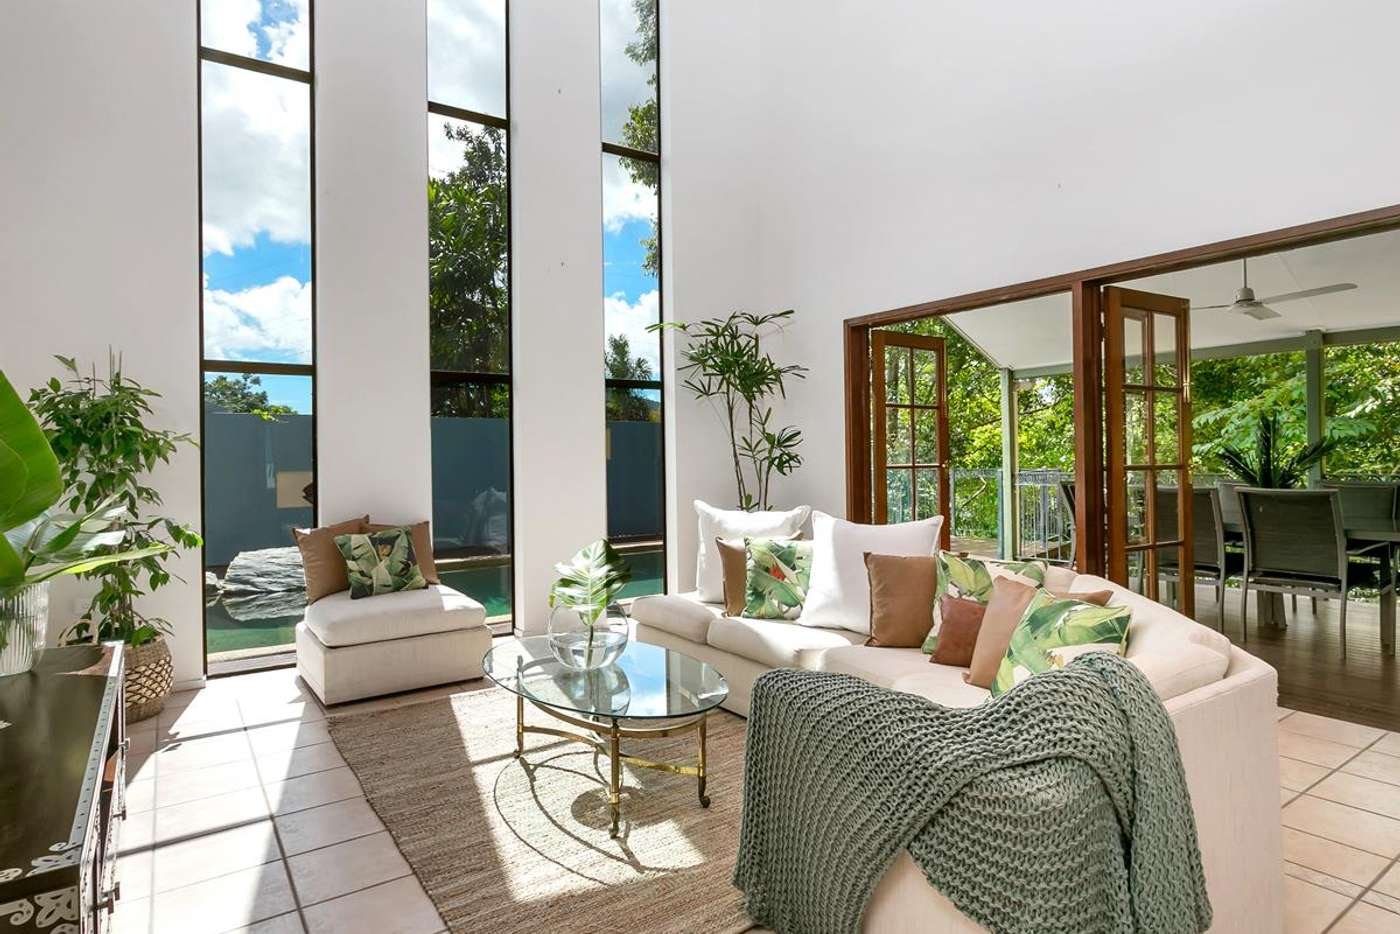 Main view of Homely house listing, 19 Slate Close, Brinsmead QLD 4870